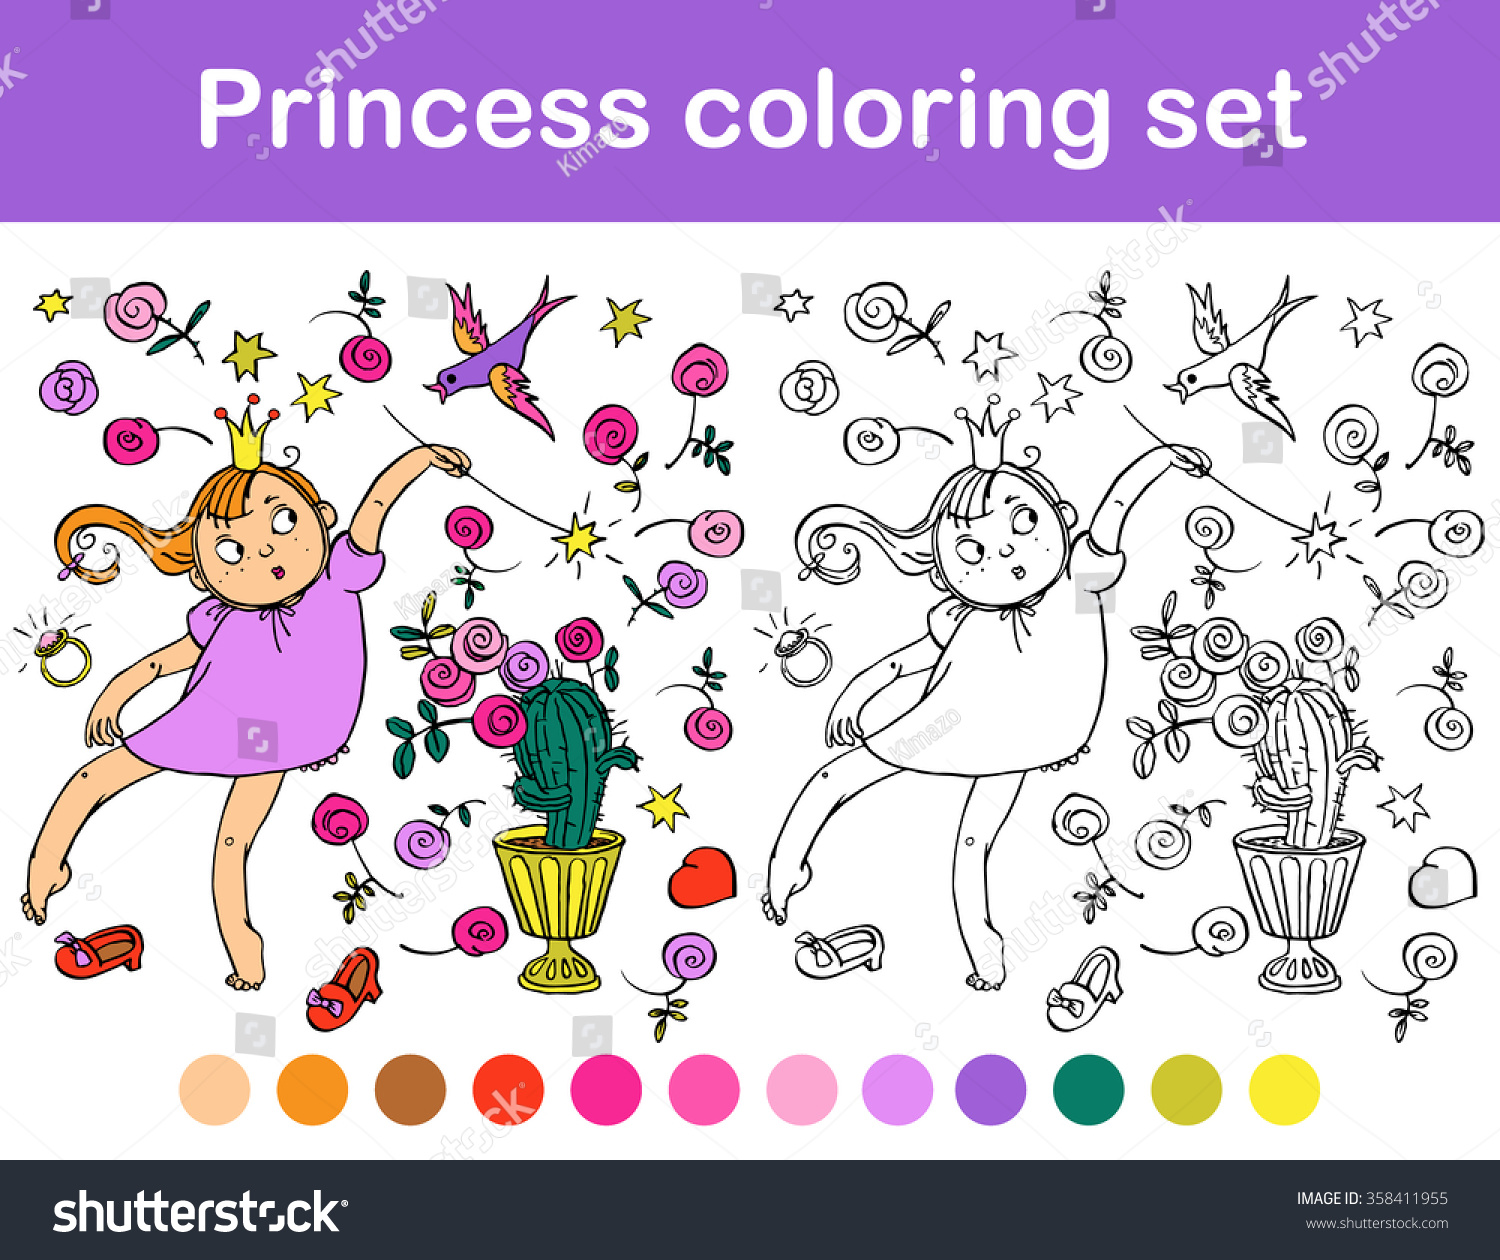 Princess coloring set - Princess Coloring Set With Roses Great Illustration For A School Books And More Vector